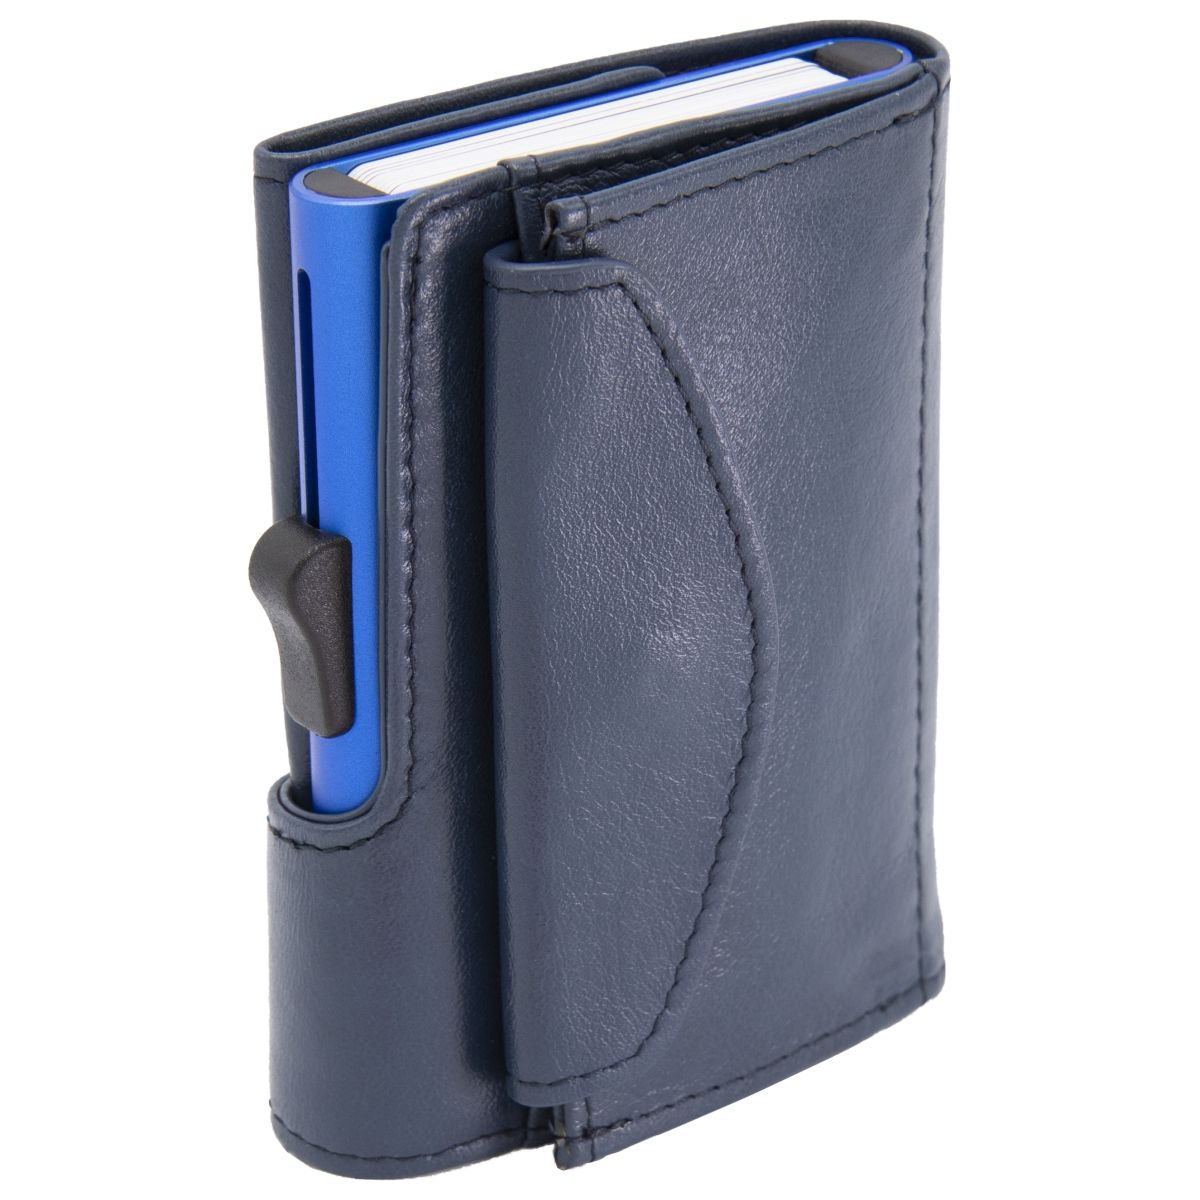 XL Aluminum Card Holder with Genuine Leather and Coins Pocket - Blue